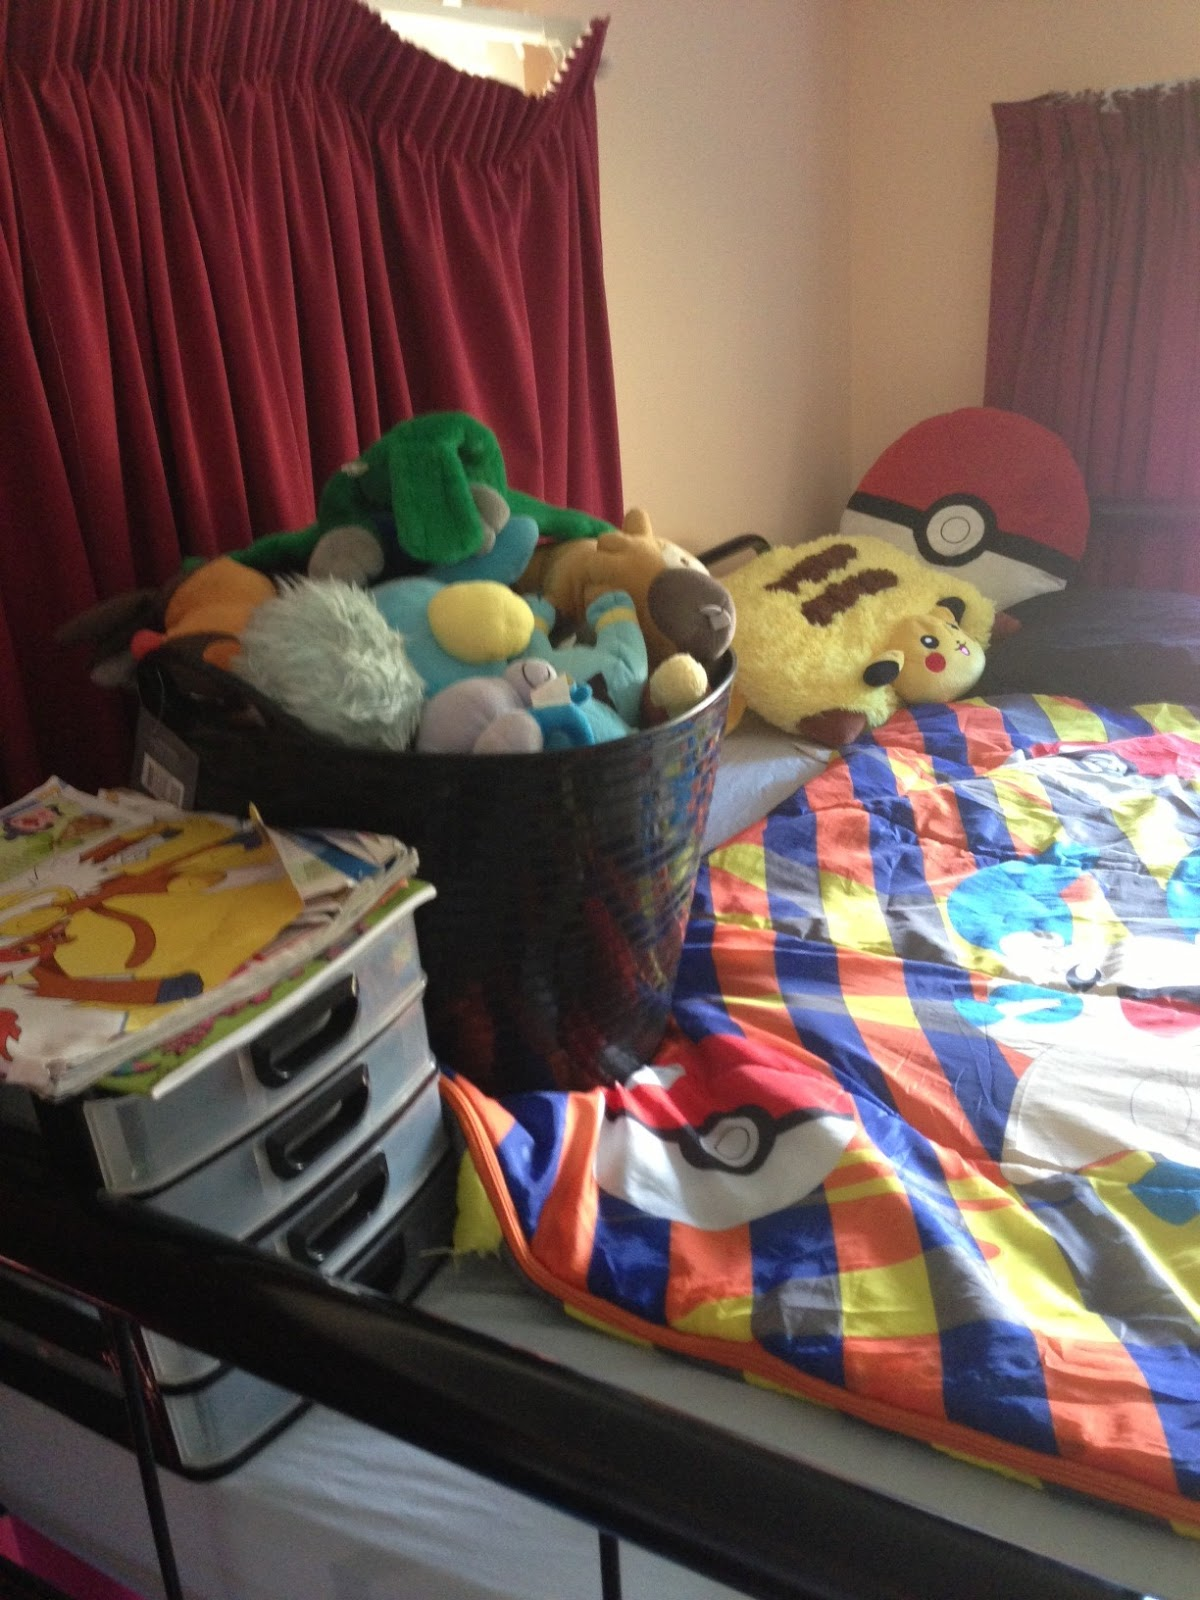 Fabulous  bed plus his entire plush Pokemon collection There is just enough room for him in his Pokemon sleeping bag with his Voltorb pillow thanks to his